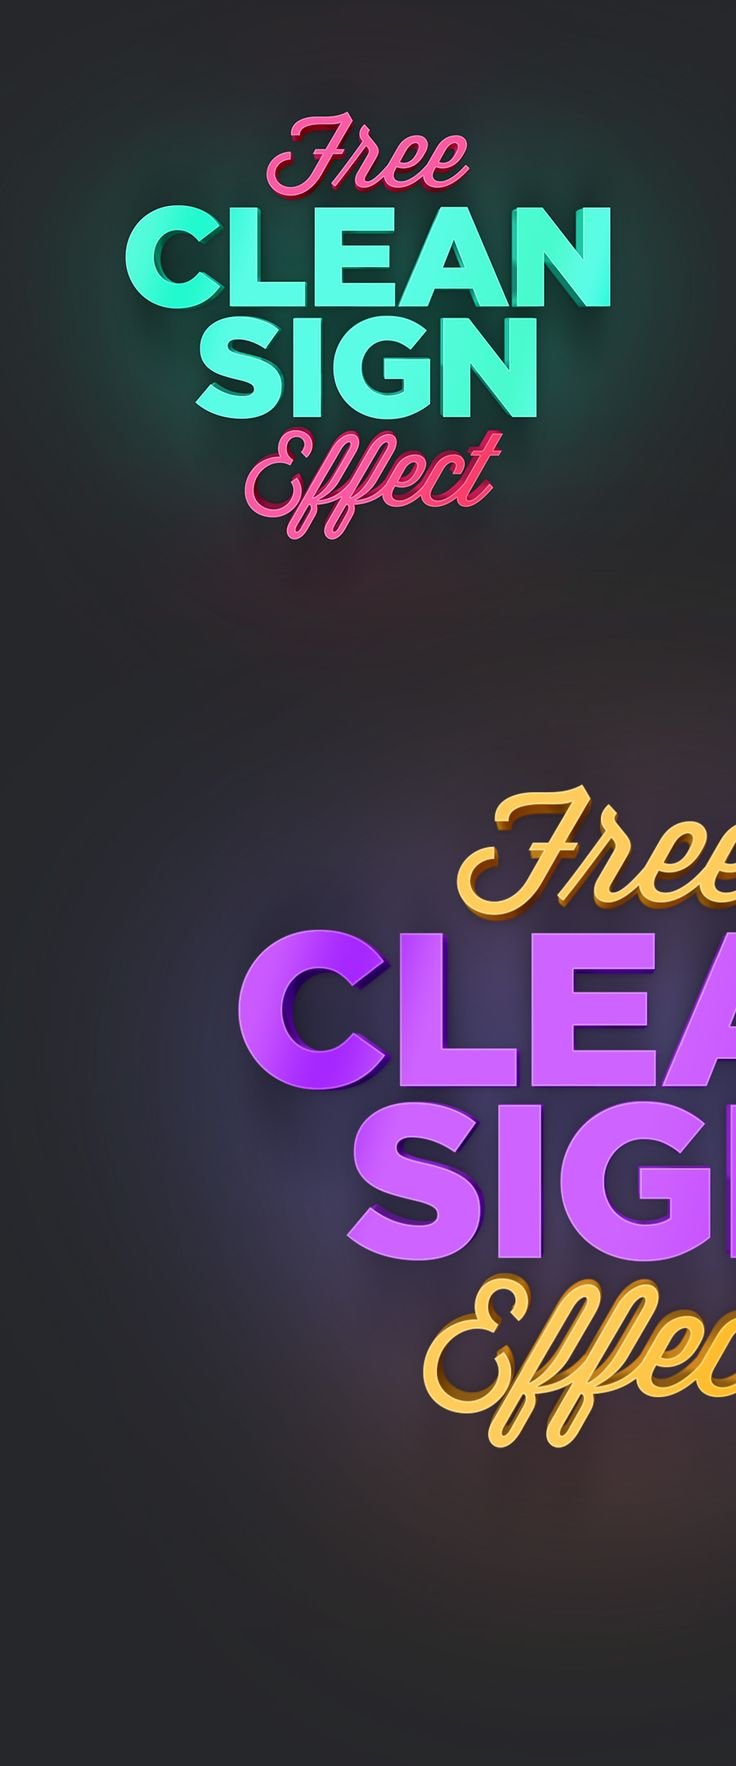 Turn Any Texts Symbols Or Logos Into A Modern Depth Dimensional Display With This Free Clean Sign Photoshop Effect Effects Available In PSD